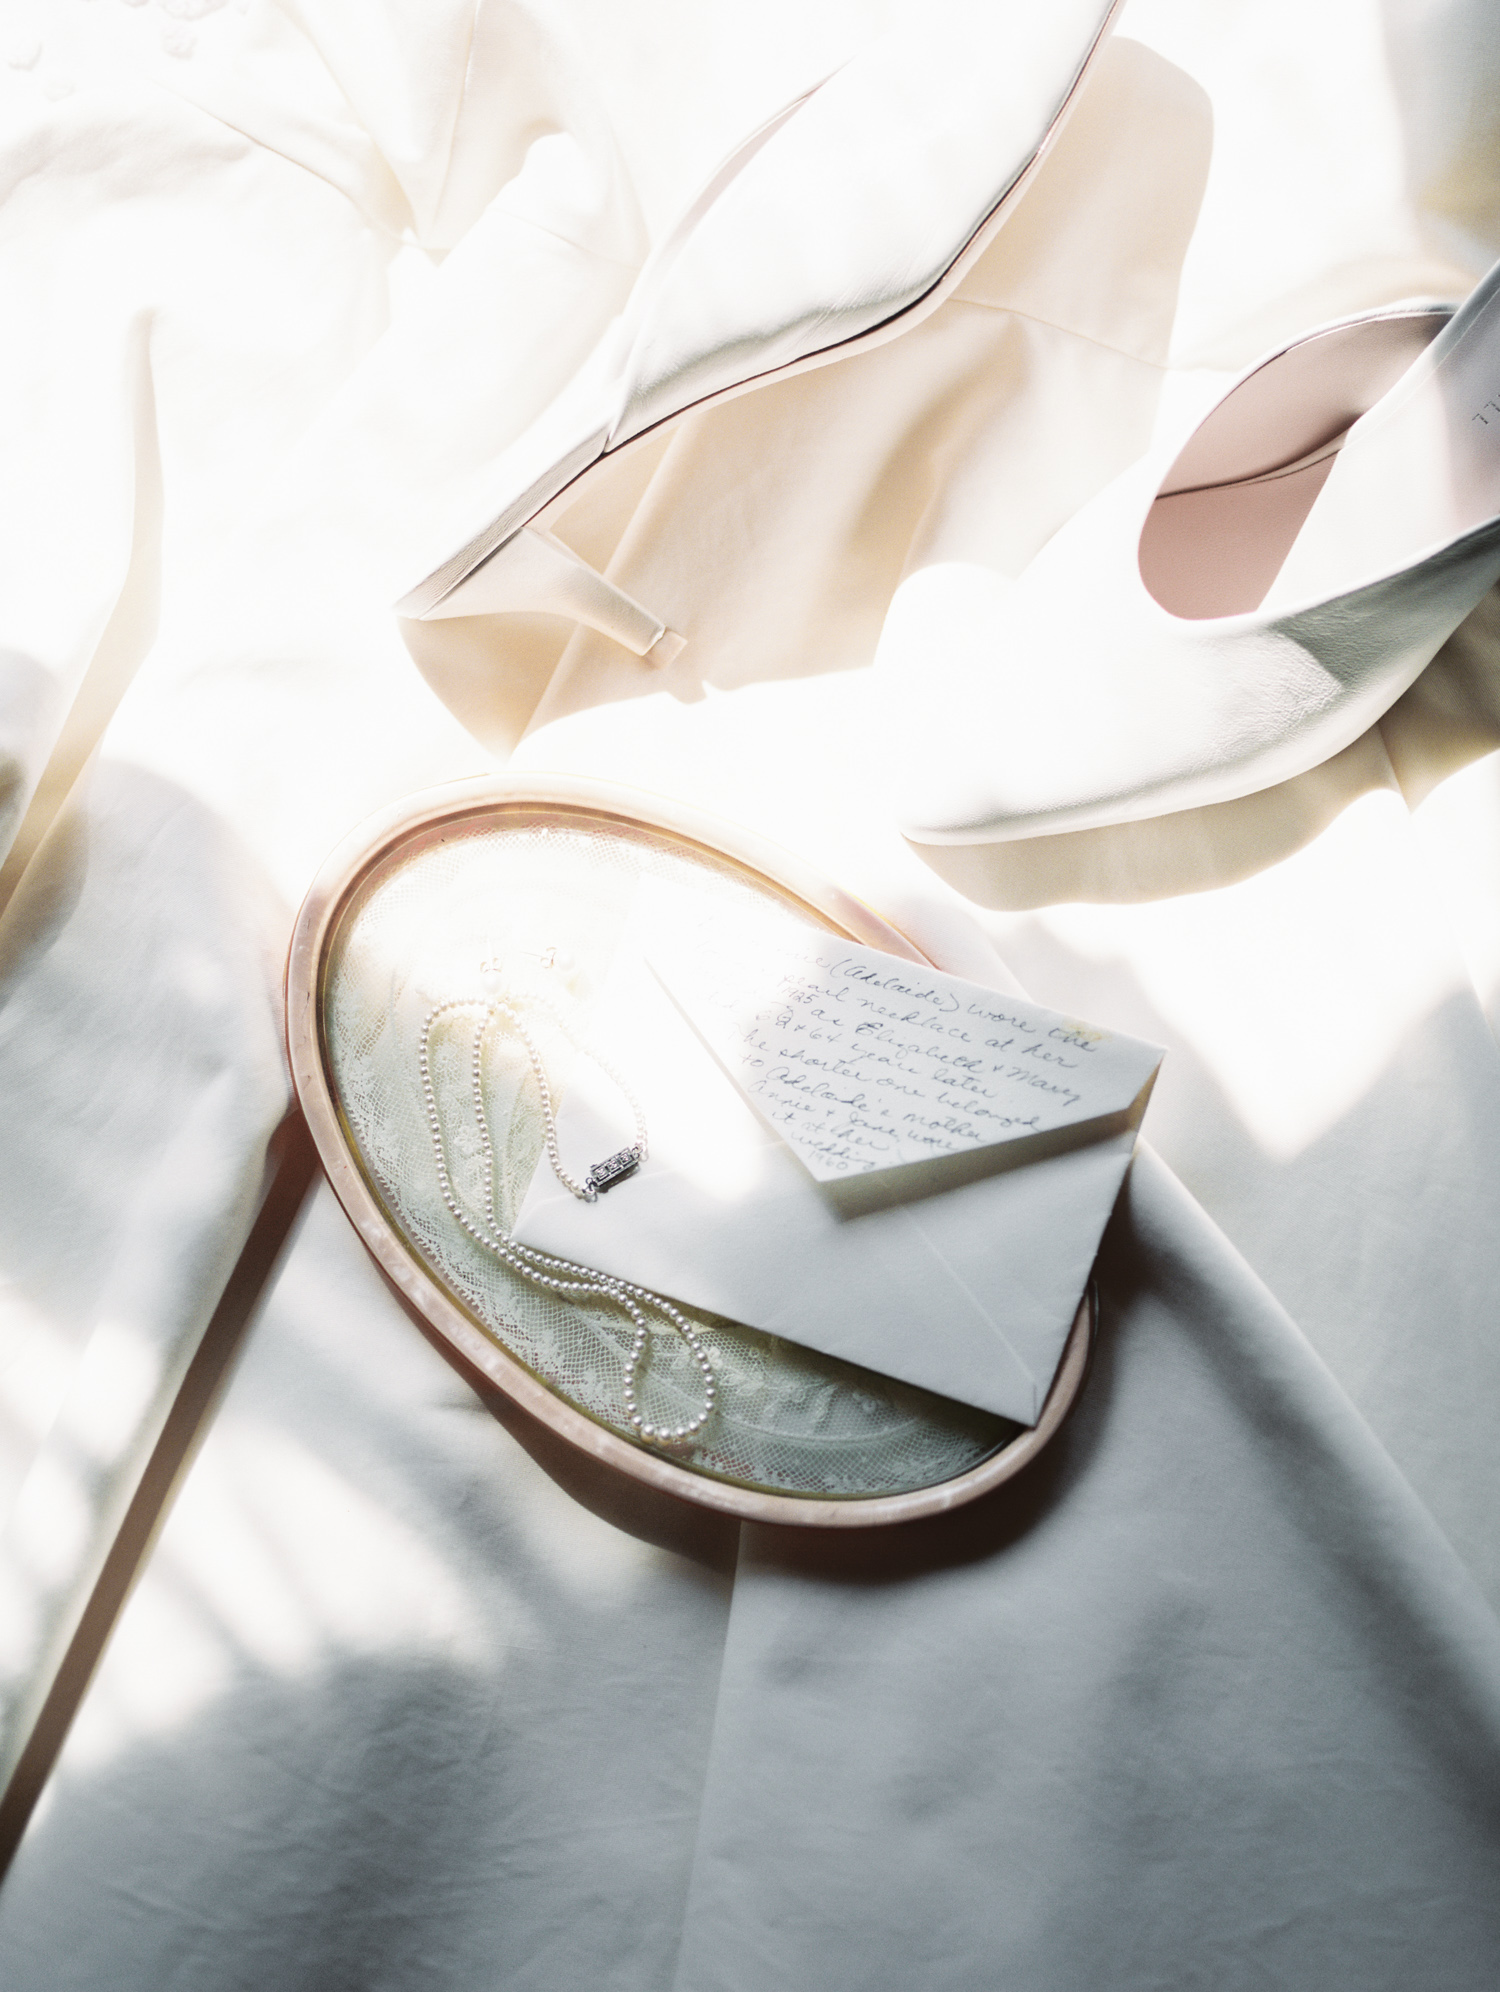 an antique pearl necklace, handwritten letter, and wedding shoes are heirloom wedding details captured on film during a Petoskey, Michigan wedding